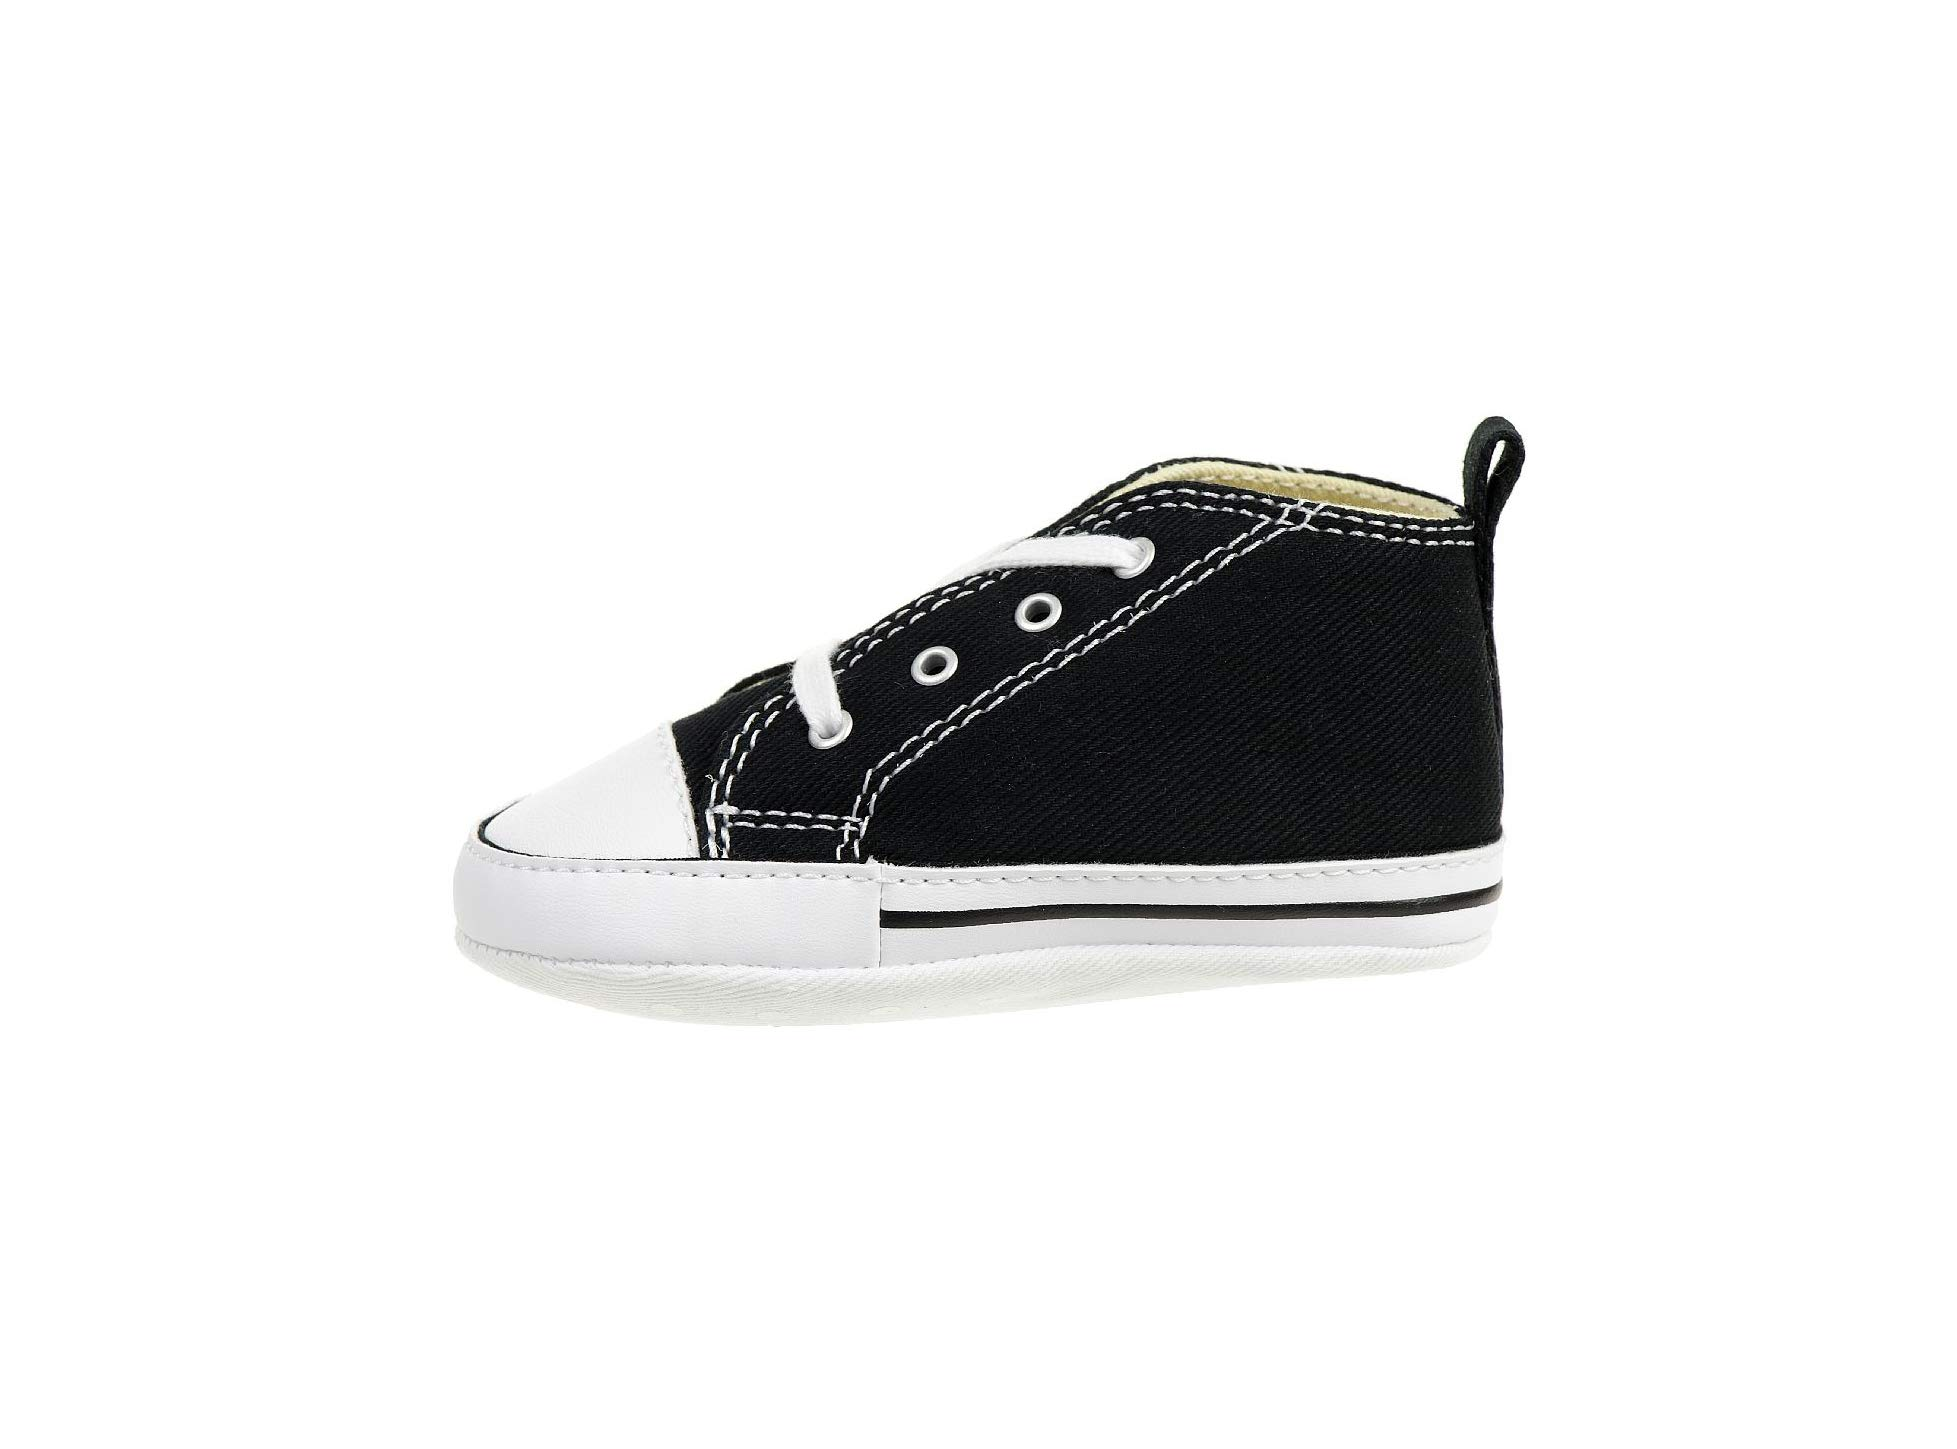 Converse Baby First Star High Top Sneaker, Black, 3 M US Infant by Converse